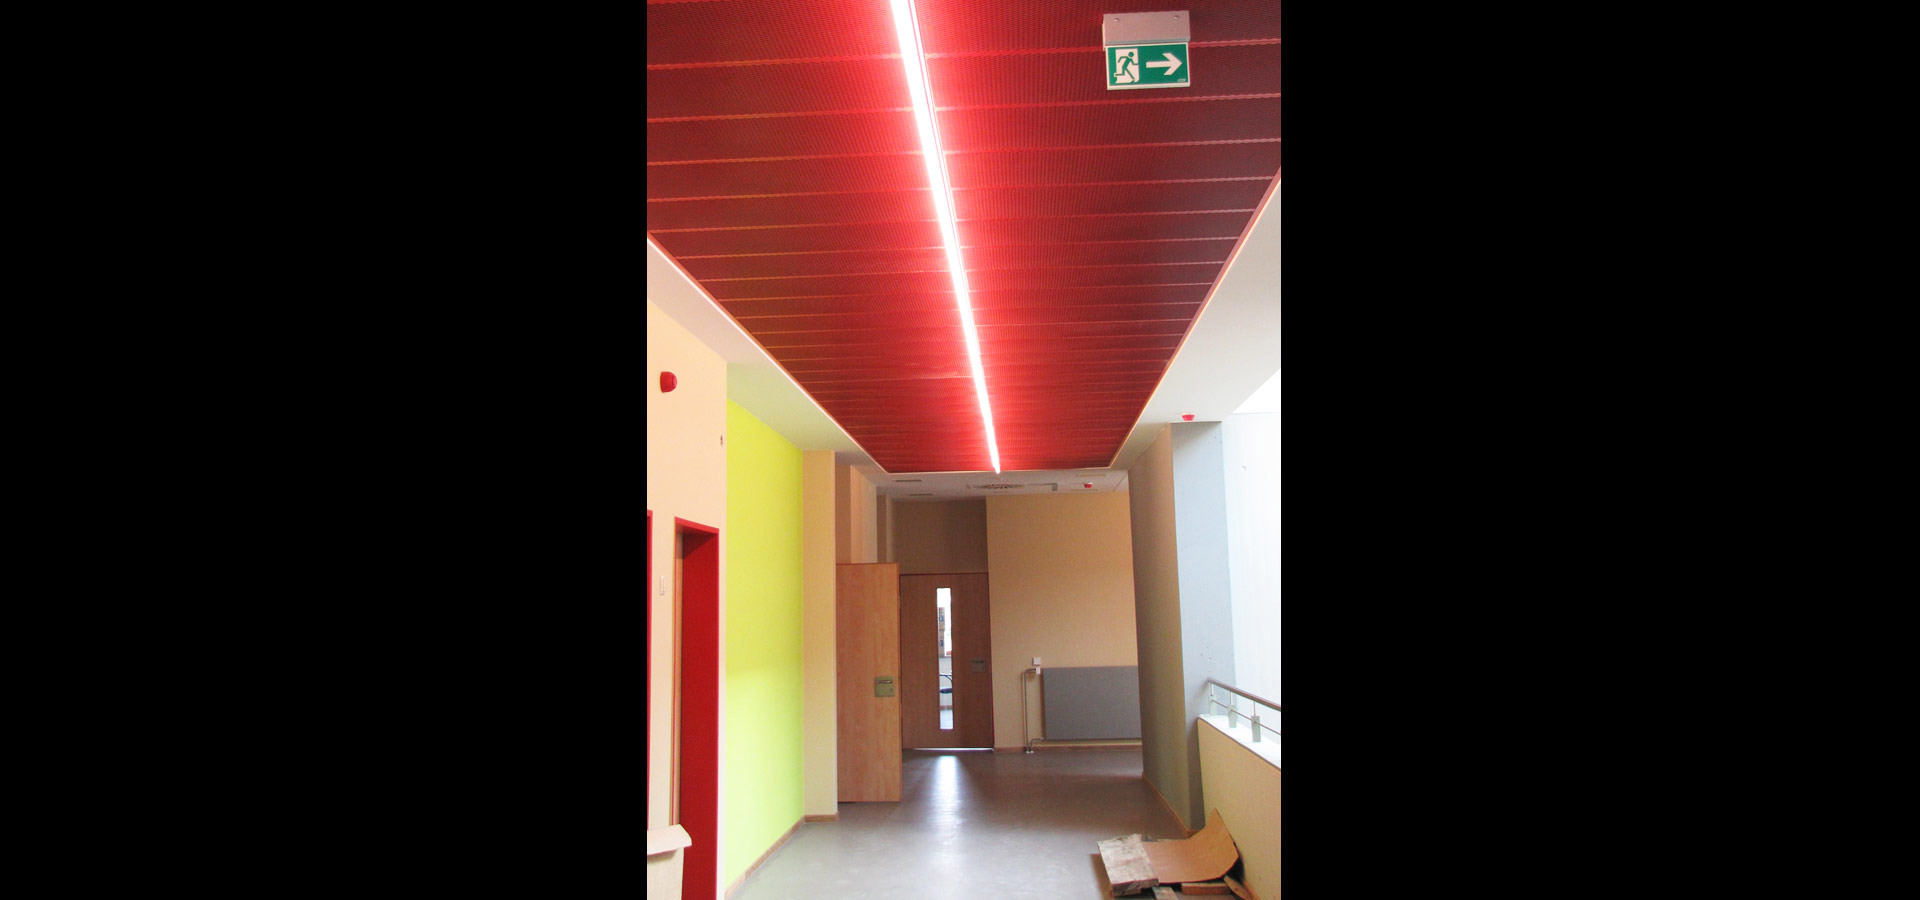 corridor lighting and emergency lighting SL 20.2 light line luxsystem